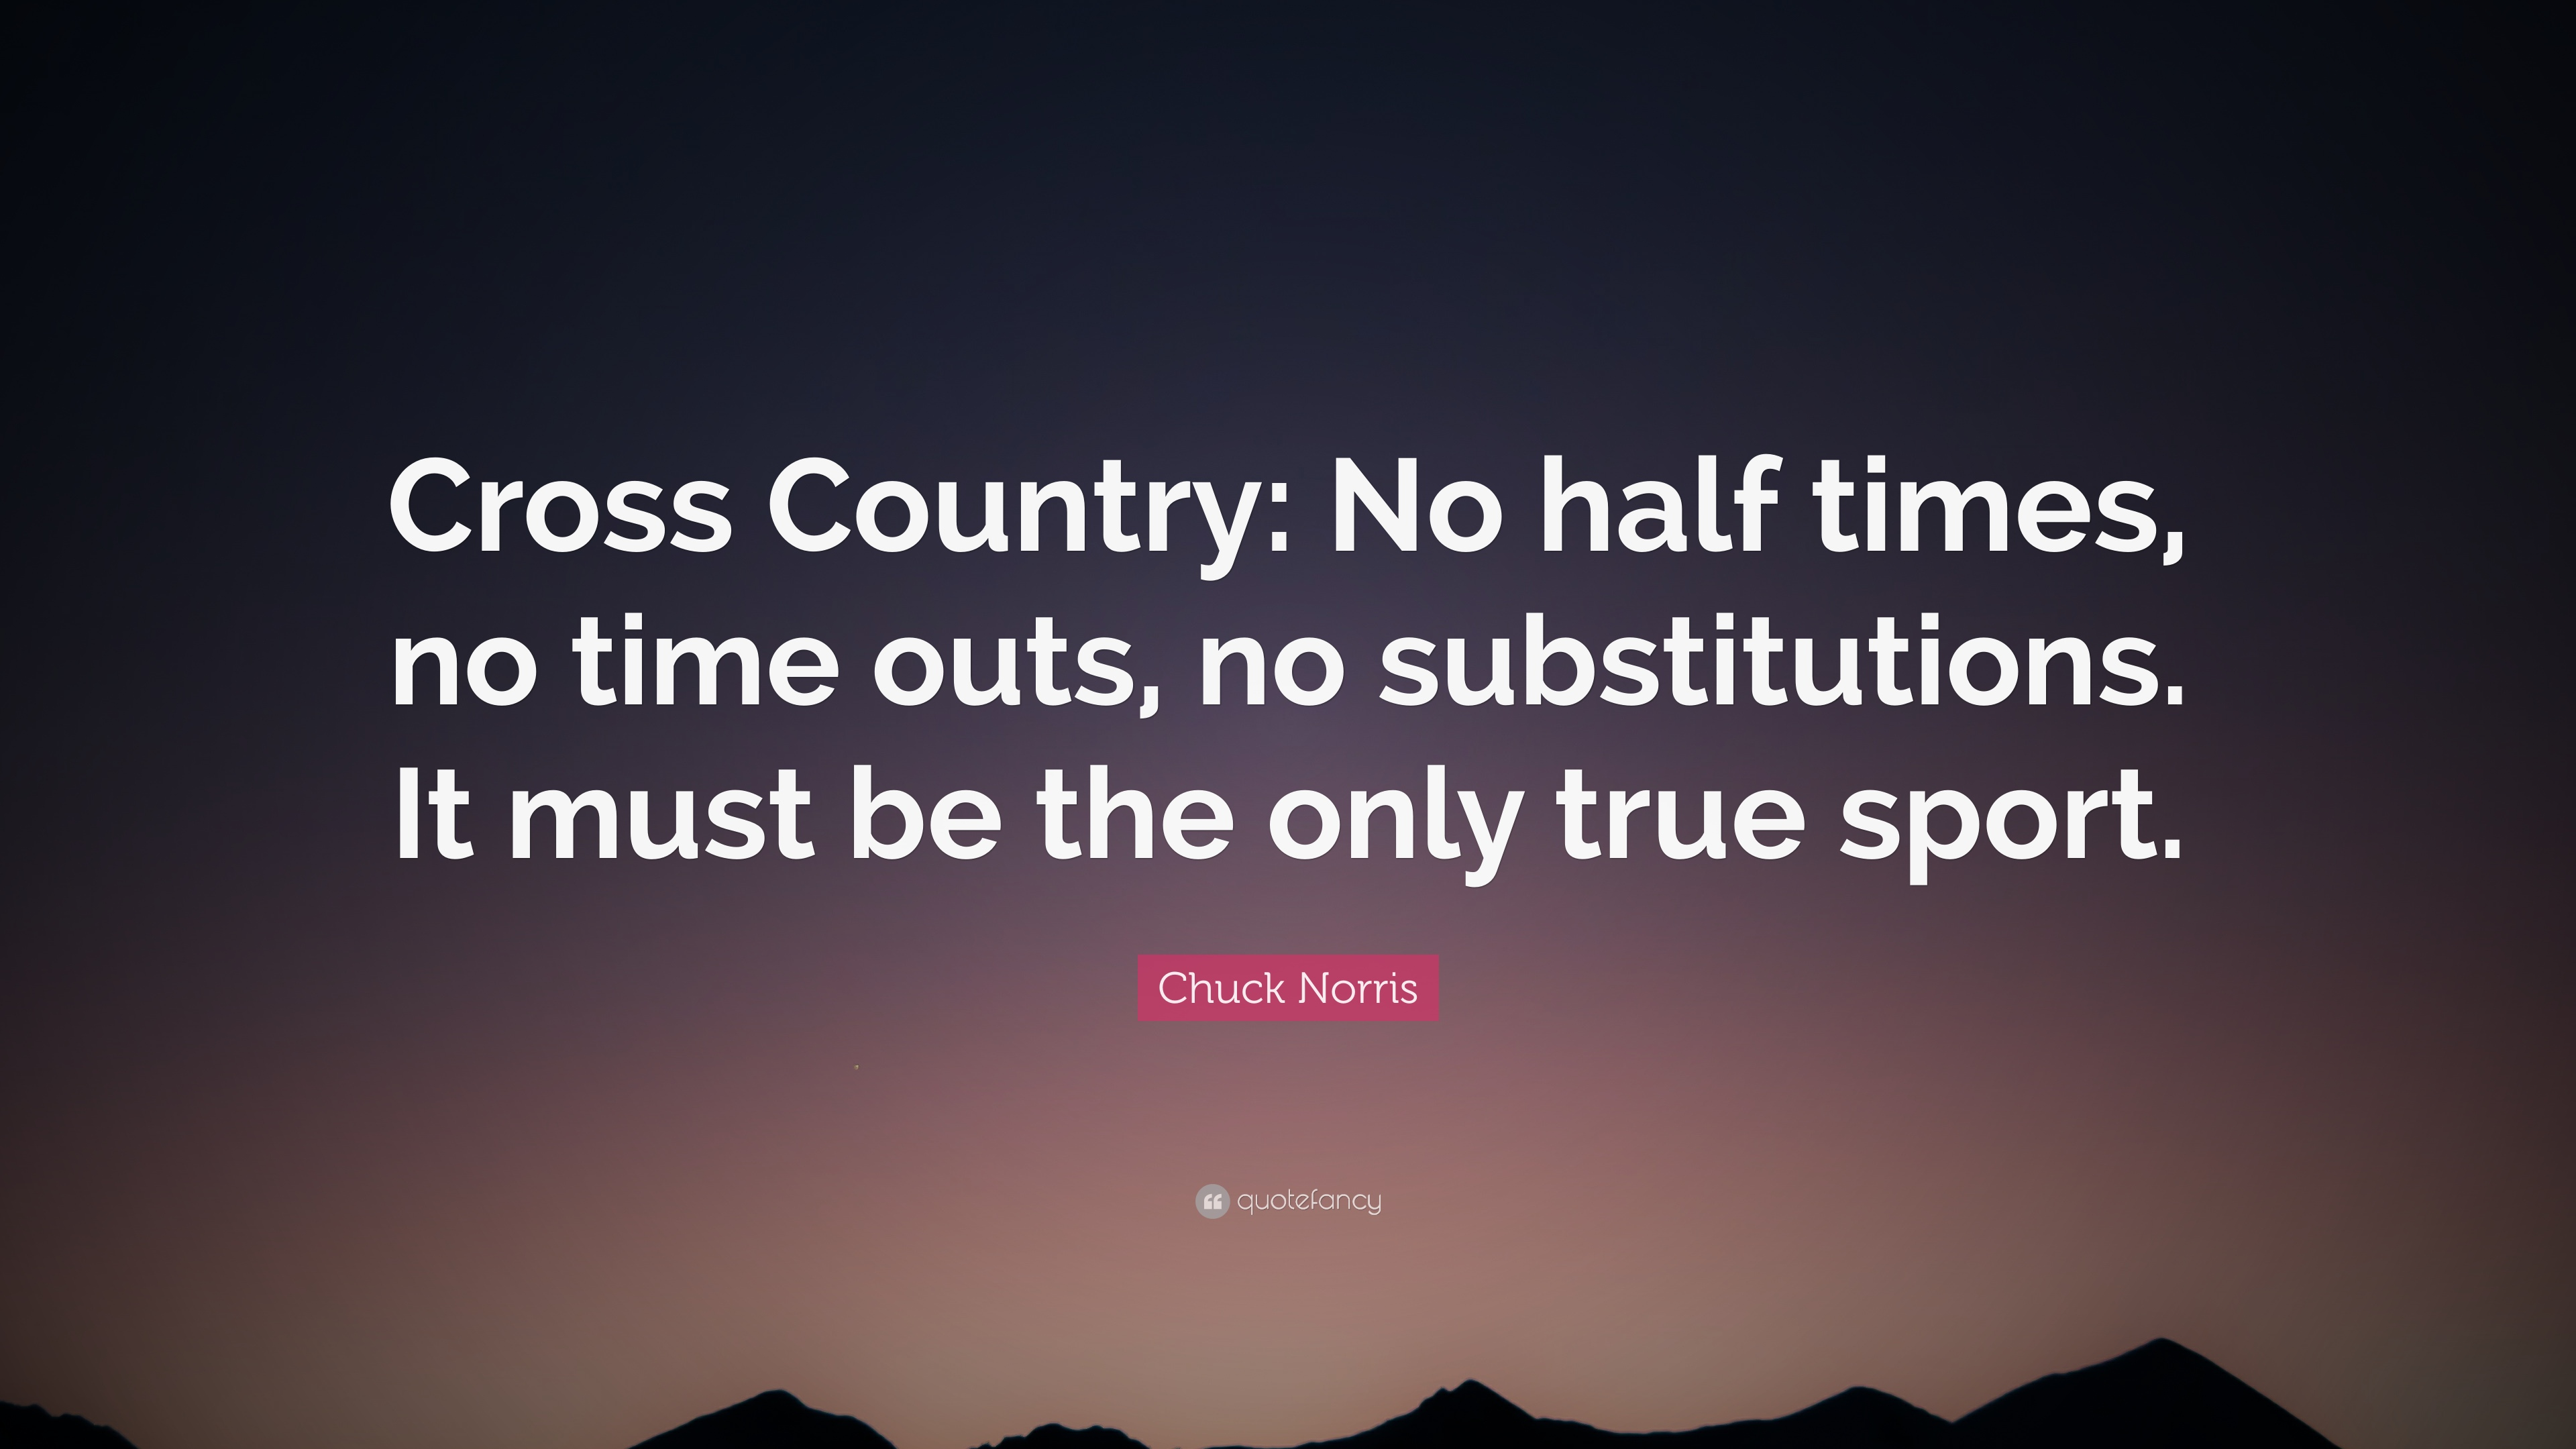 Cross Country Quotes >> Chuck Norris Quote Cross Country No Half Times No Time Outs No